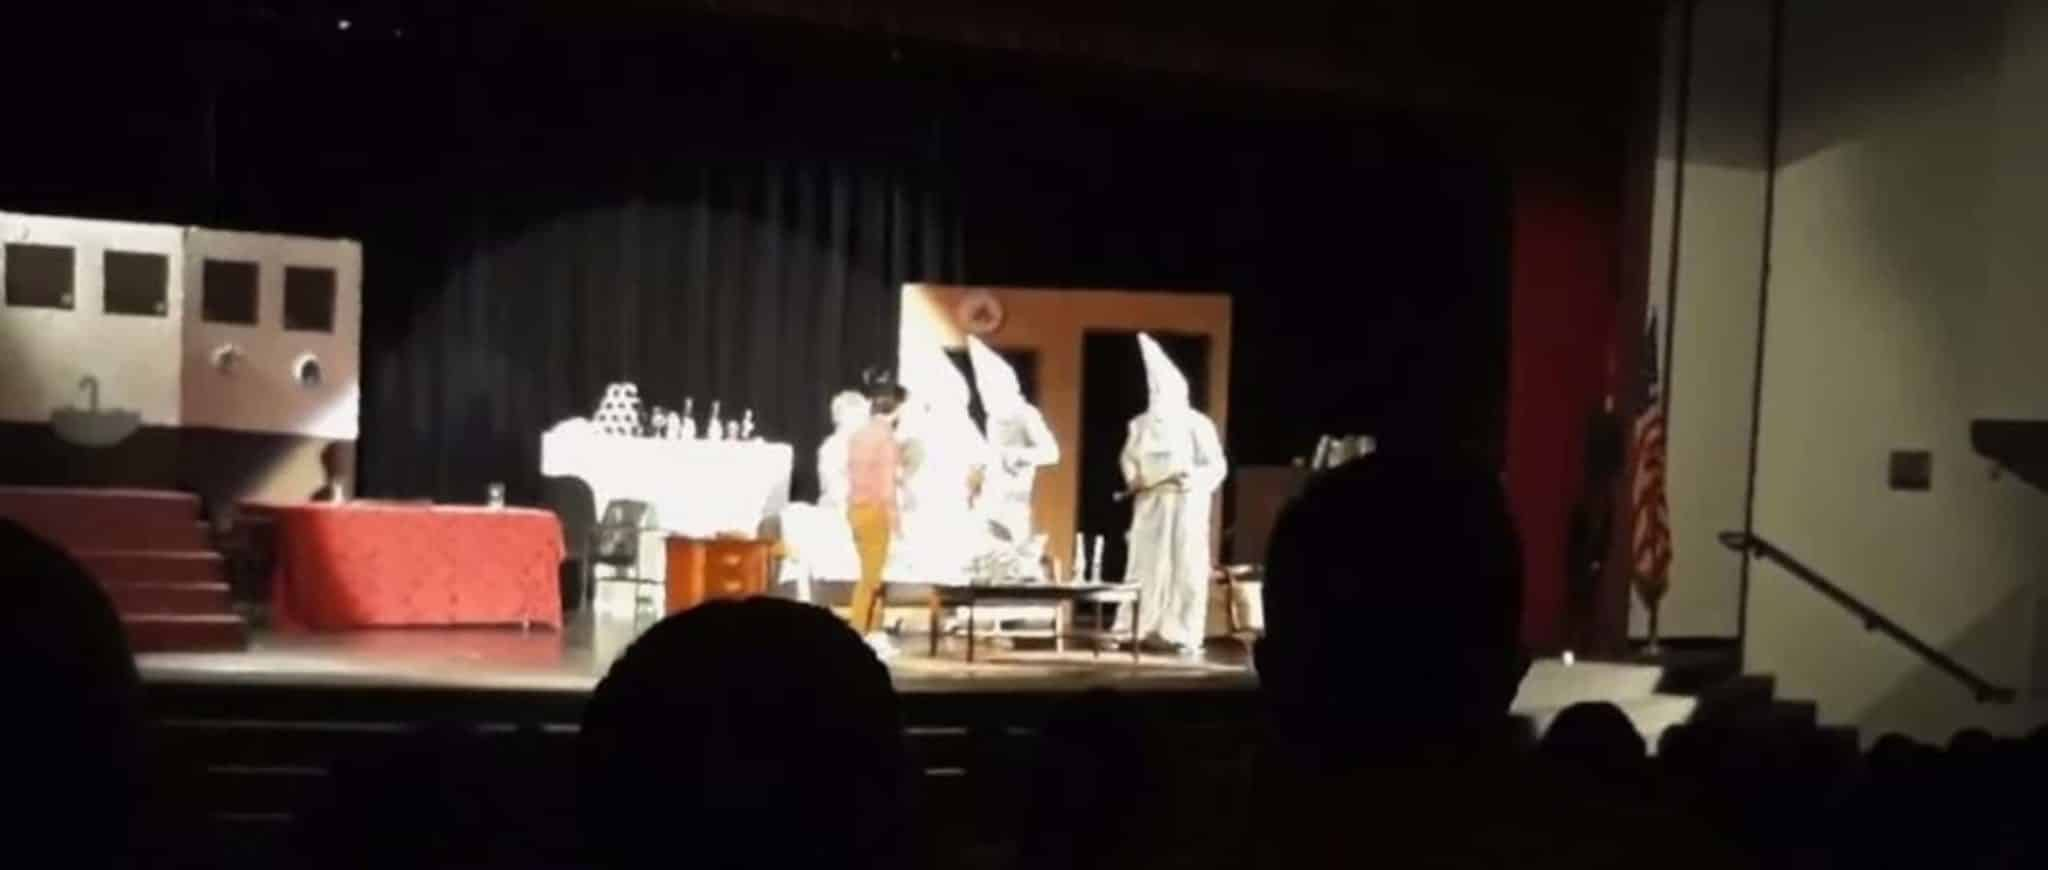 Parents Angry KKK Was Depicted in High School Play Addressing Racism